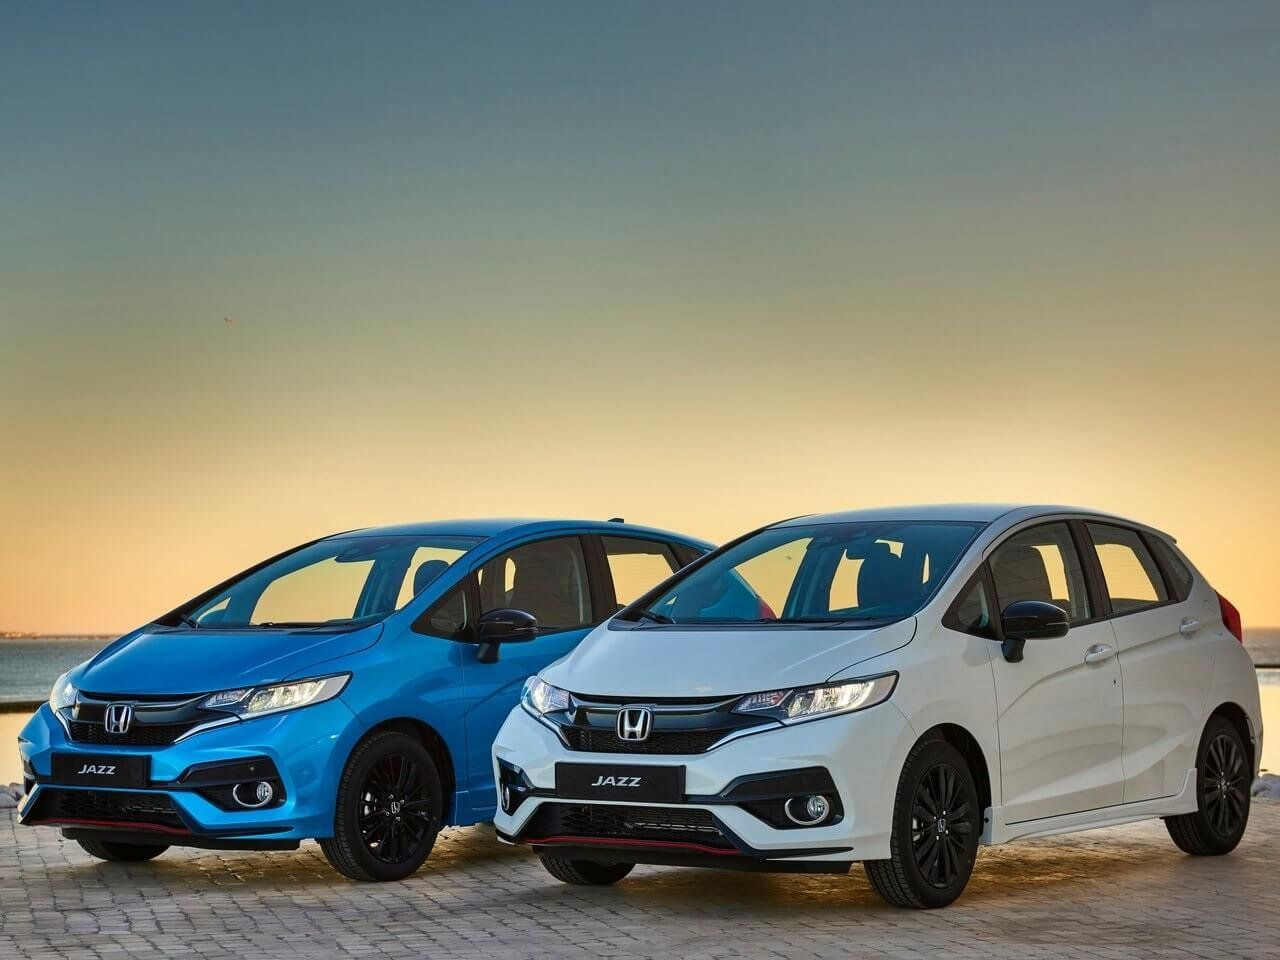 Honda Fit Redesign 2020 Price And Review From Hybrid Rumors Photo Gallery Rs Inside